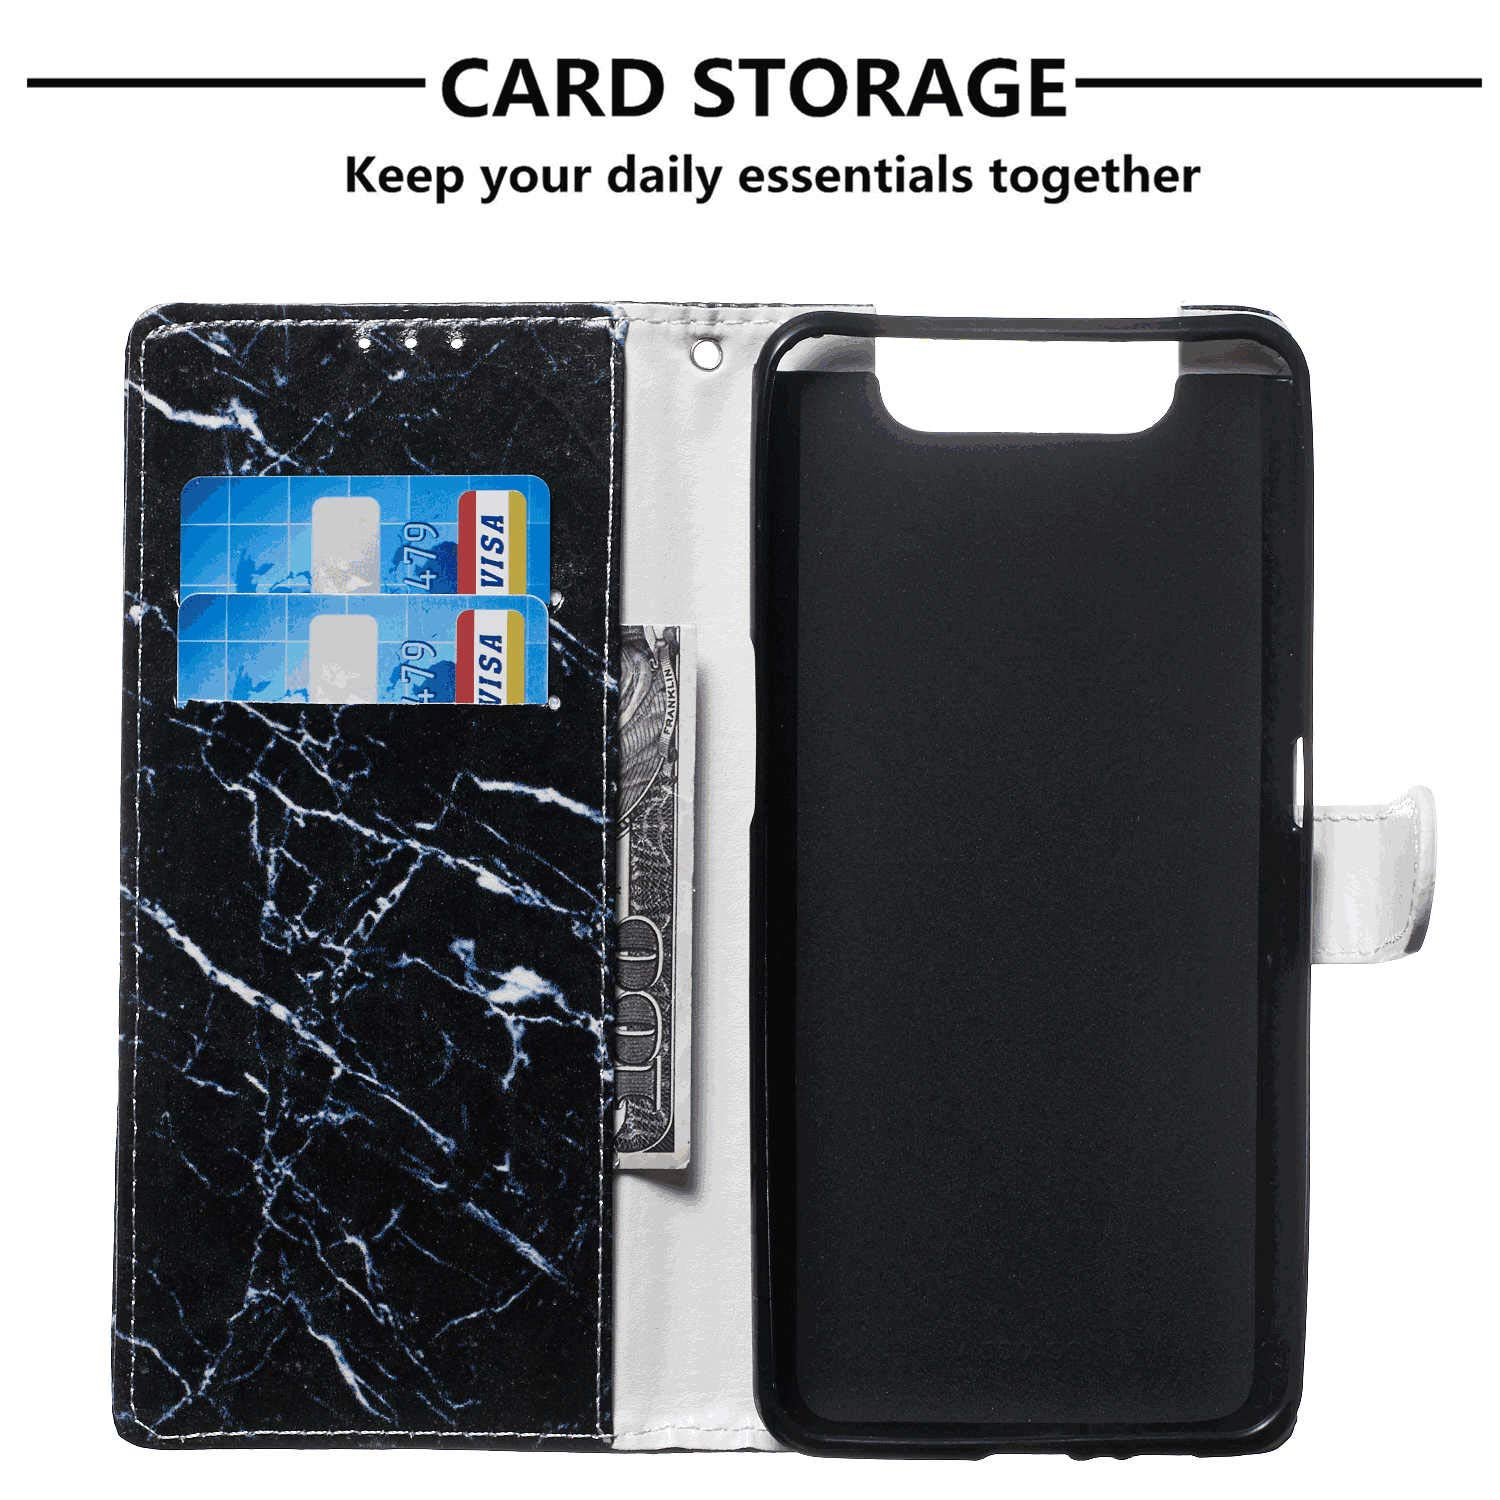 iPhone 8 Flip Case Cover for iPhone 8 Leather Kickstand Wallet Cover Card Holders Extra-Protective Business with Free Waterproof-Bag Delicate